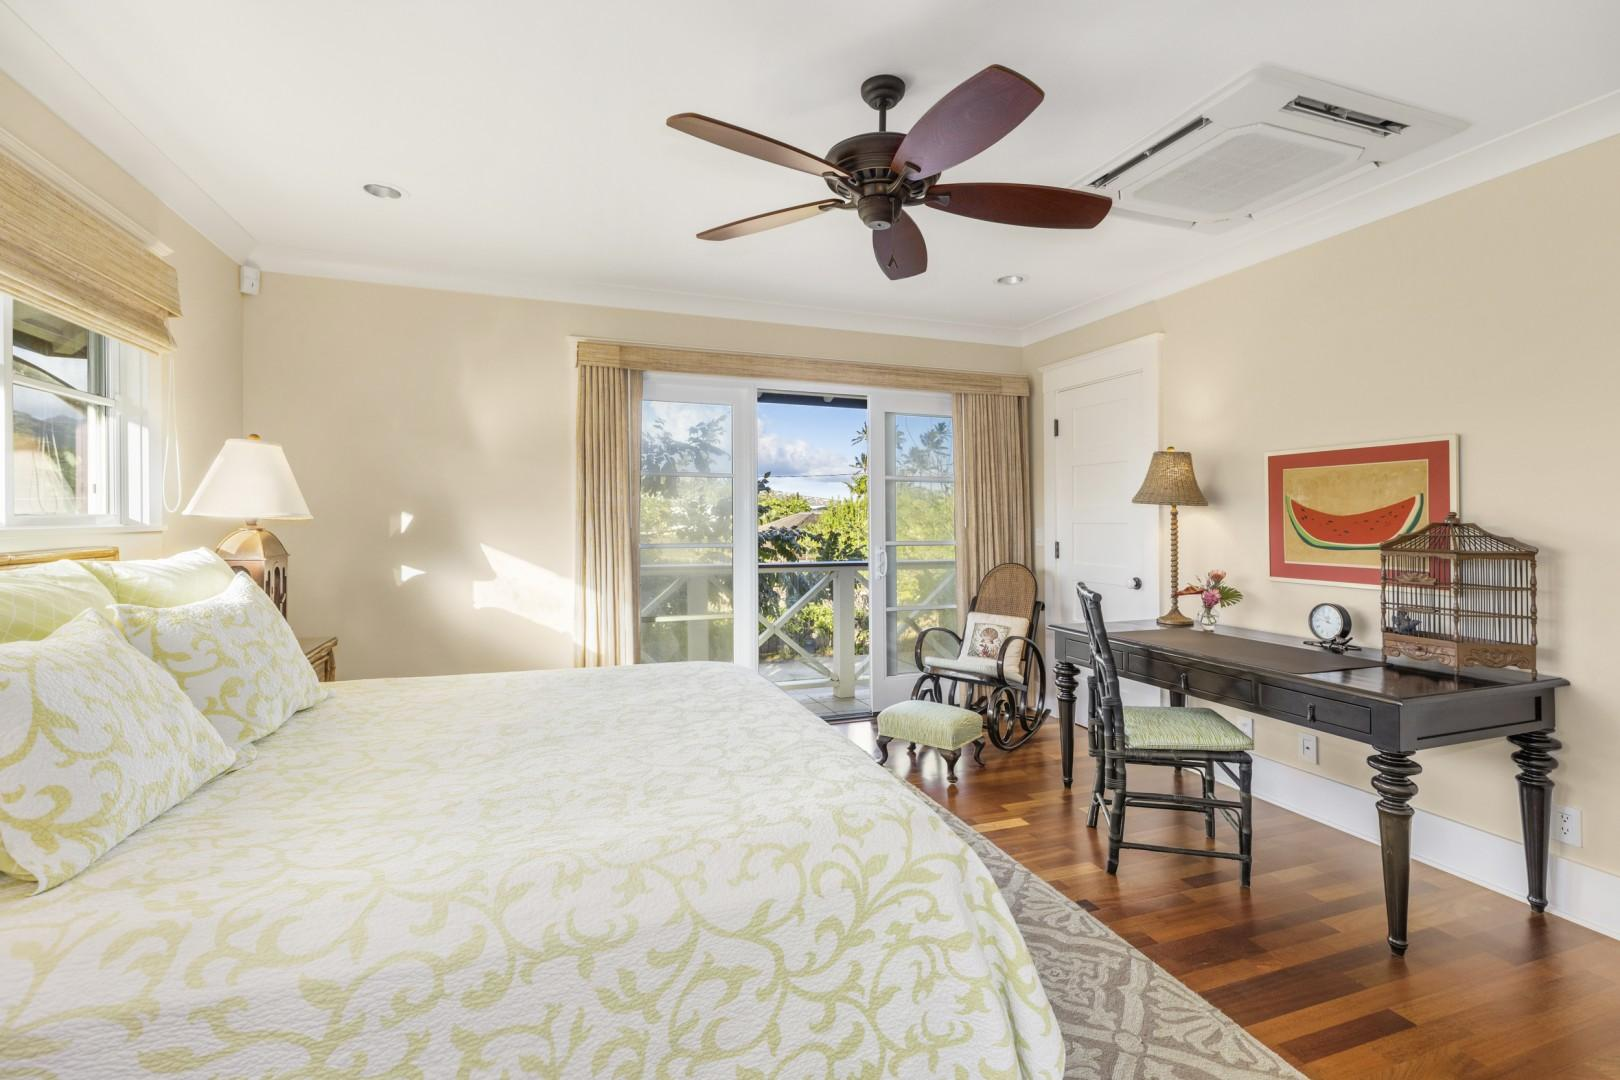 Carriage House bedroom, with lanai access